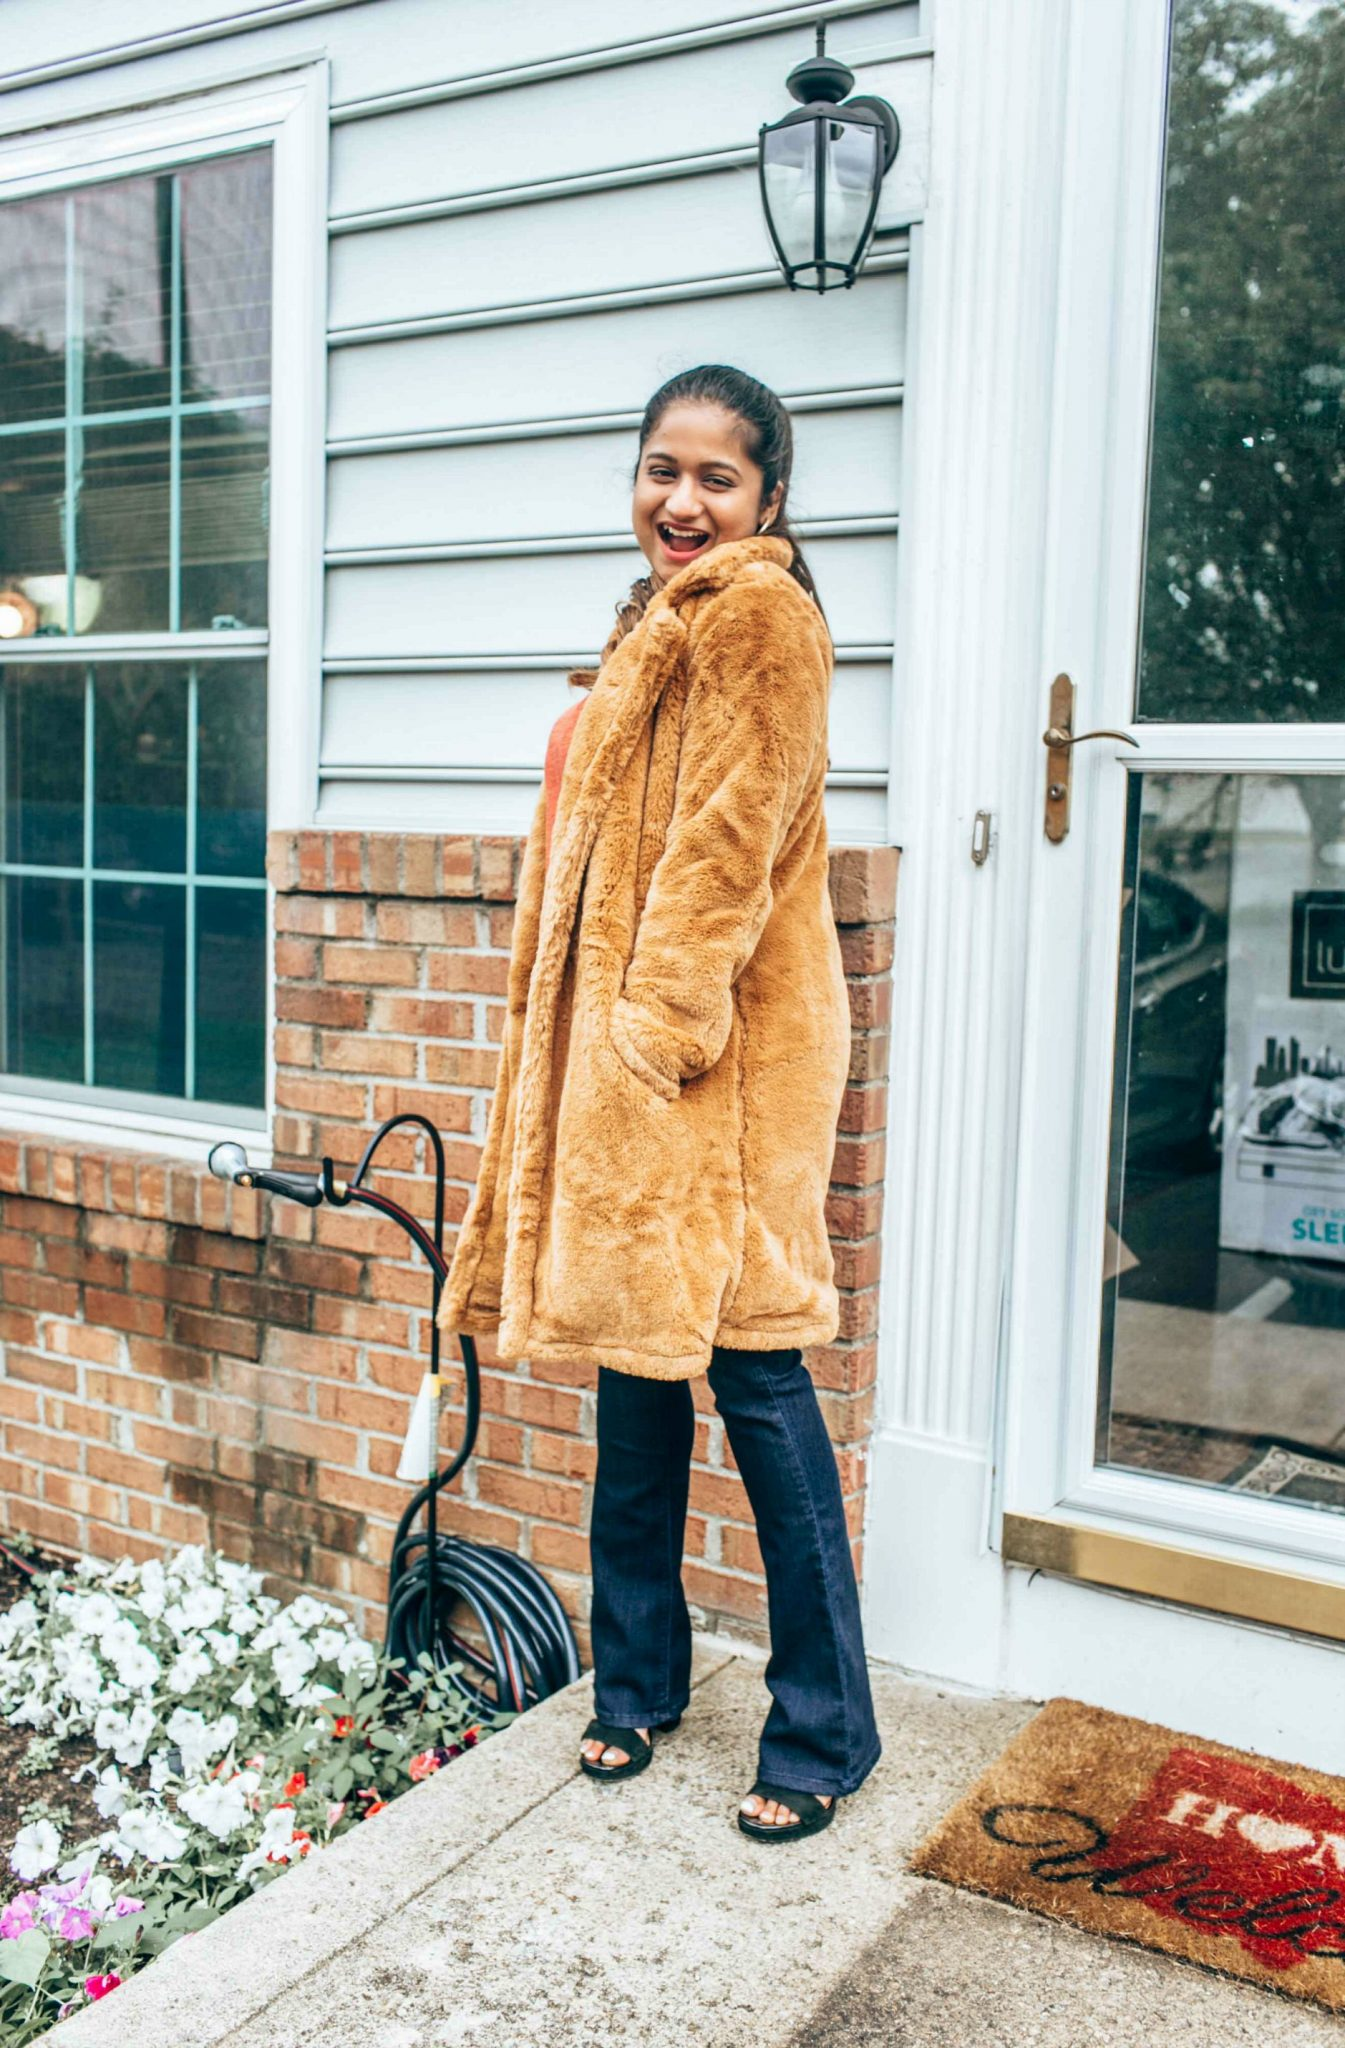 wearing Faux Fur Teddy Coat WOVEN HEART - Nordstrom Anniversary Sale top picks featured by popular Ohio modest fashion blogger, Dreaming Loud